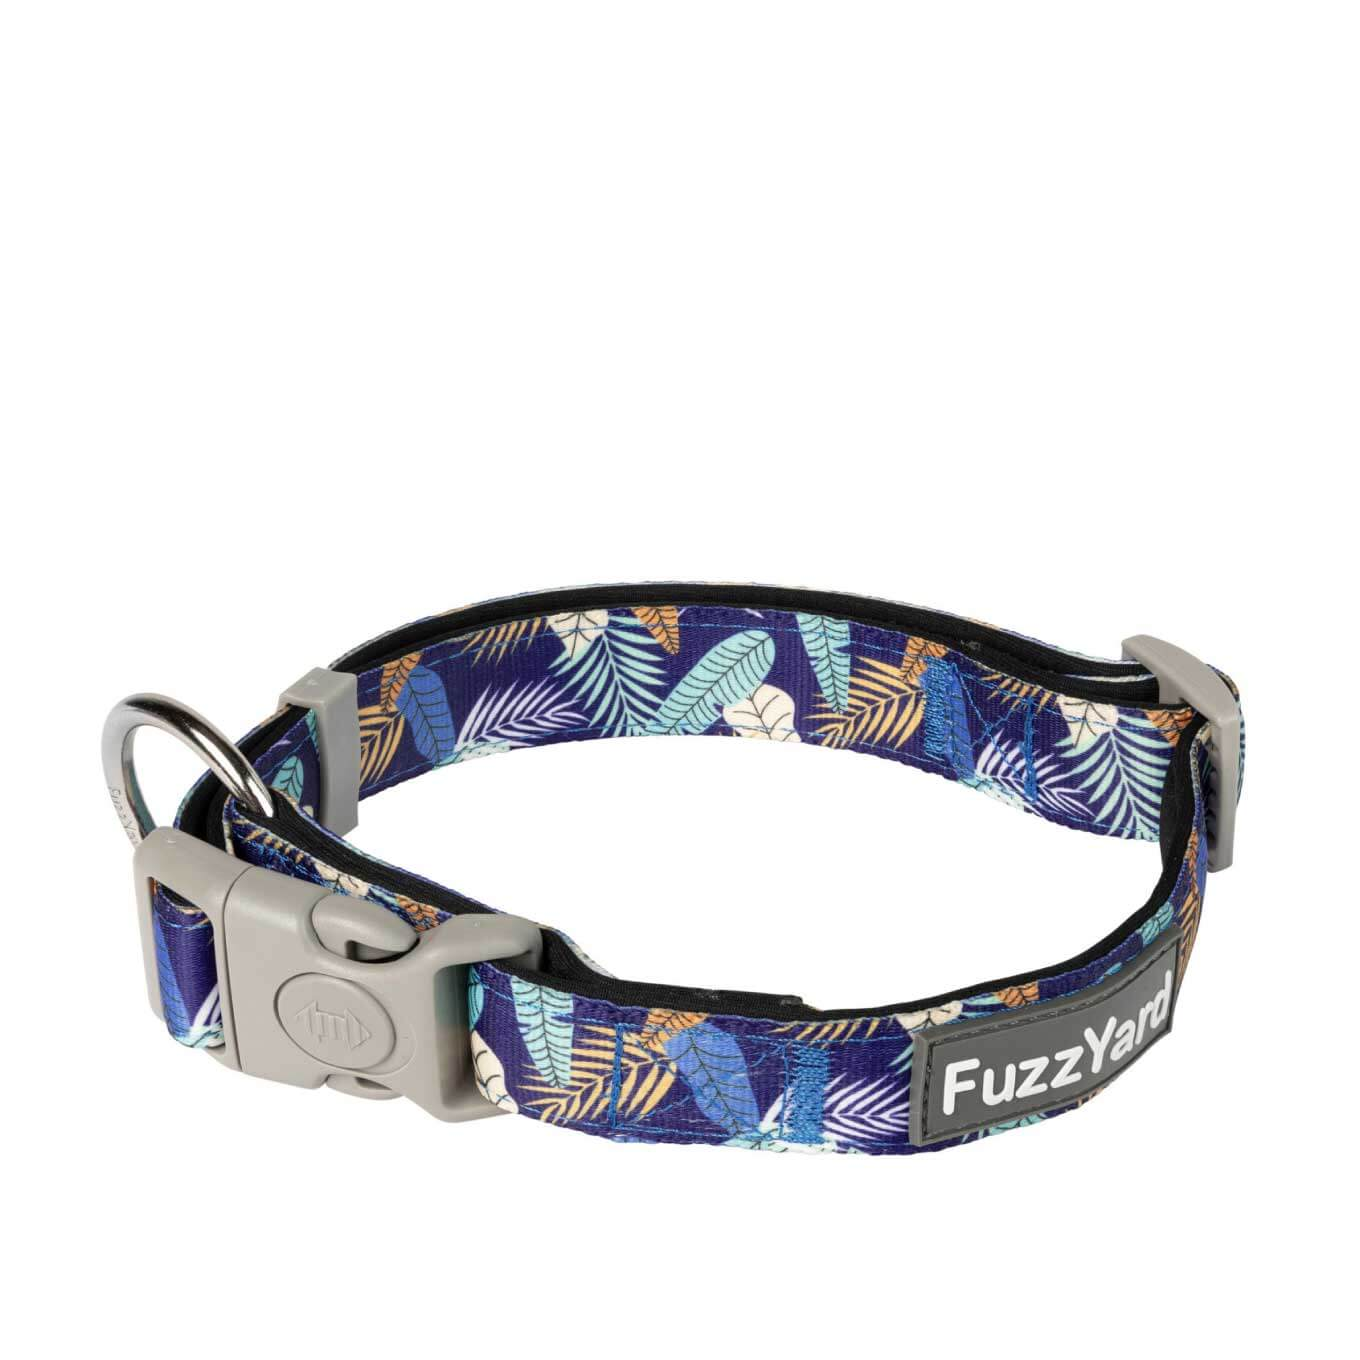 FuzzYard Mahalo Dog Collar - Shop Vanillapup Online Pet Shop